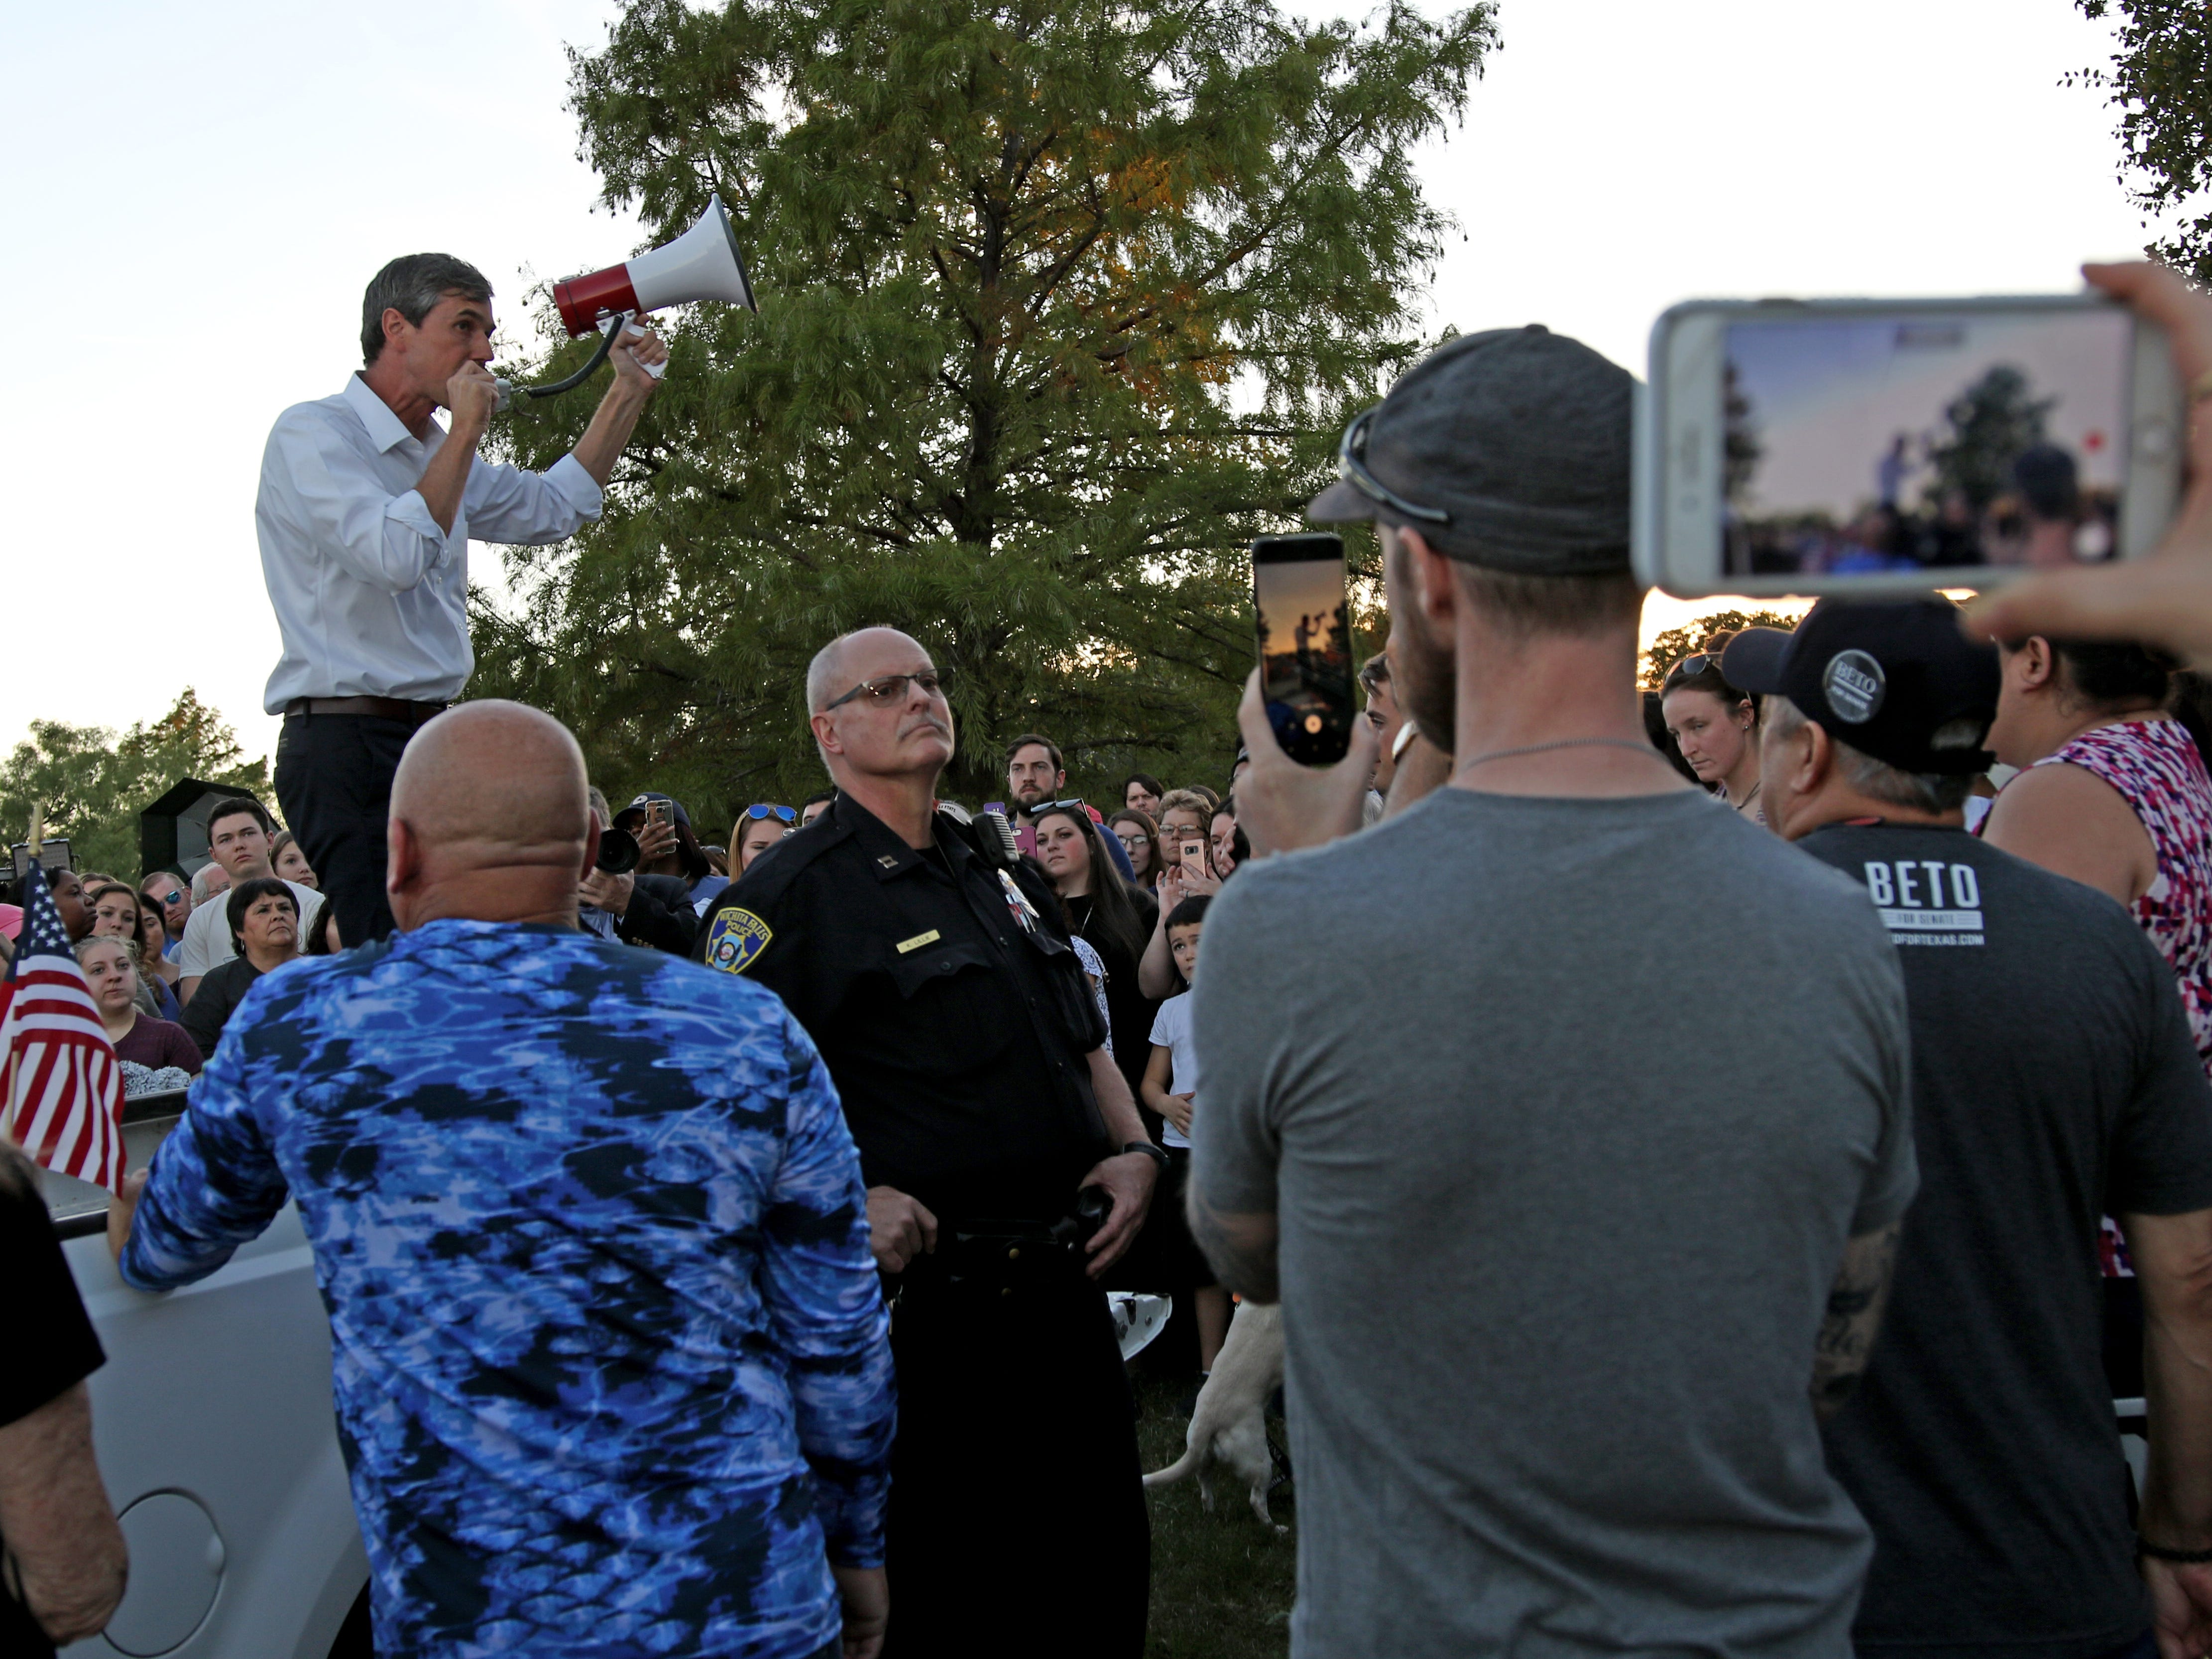 Rep. Beto O'Rourke gives a speech from the bed of a pickup Monday, Oct. 29, 2018, at Kiwanis Park in Wichita Falls.